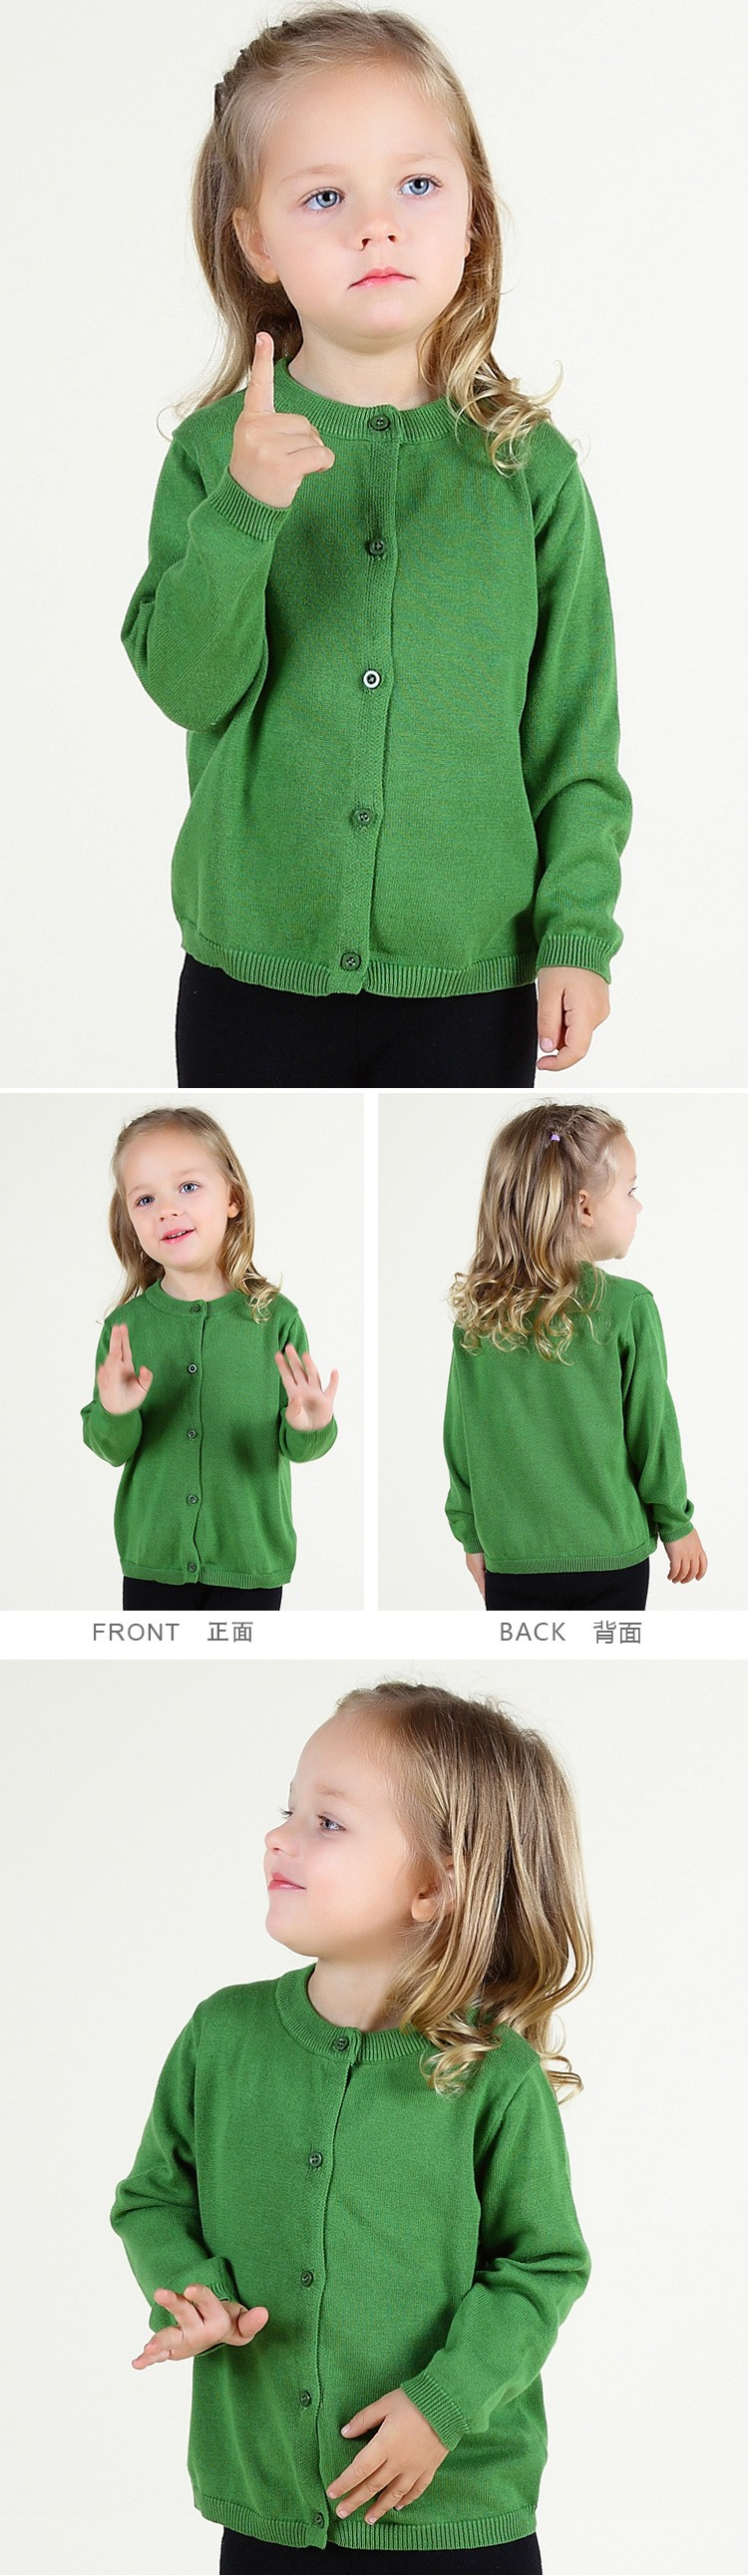 5T Dave /& Bella Olive Green Boys Knit Pullover Sweater 4T